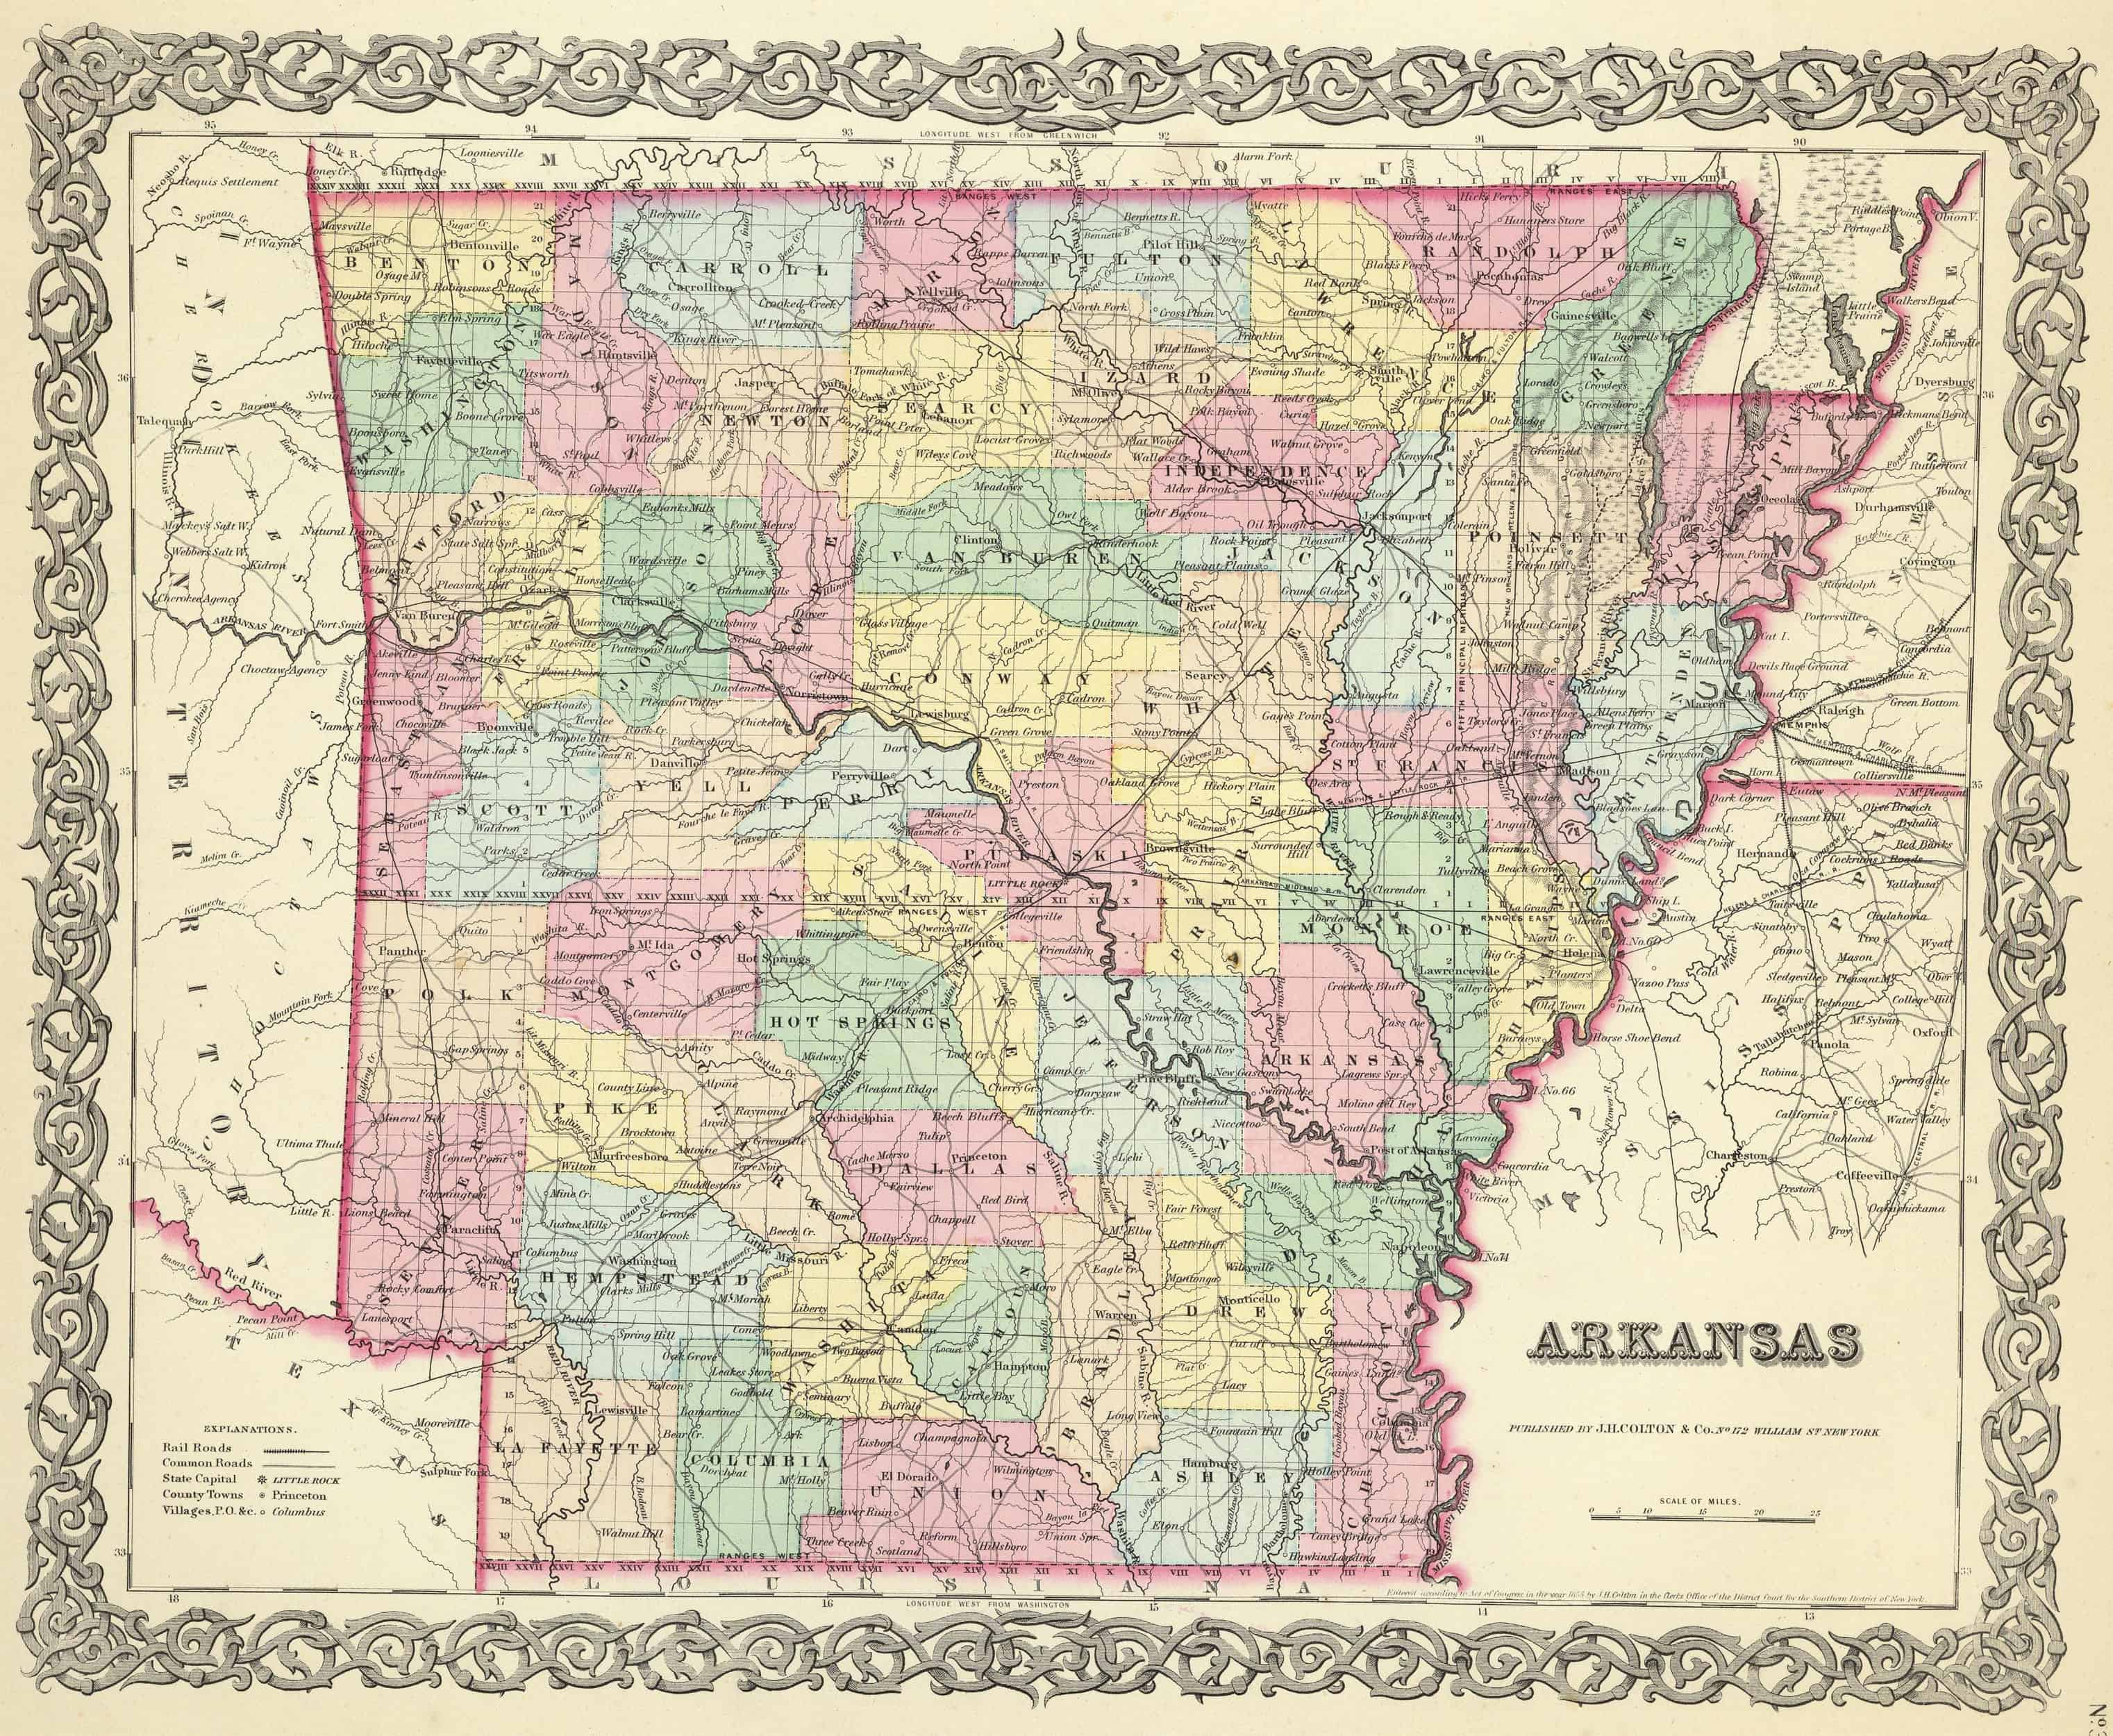 Old Historical City, County and State Maps of Arkansas